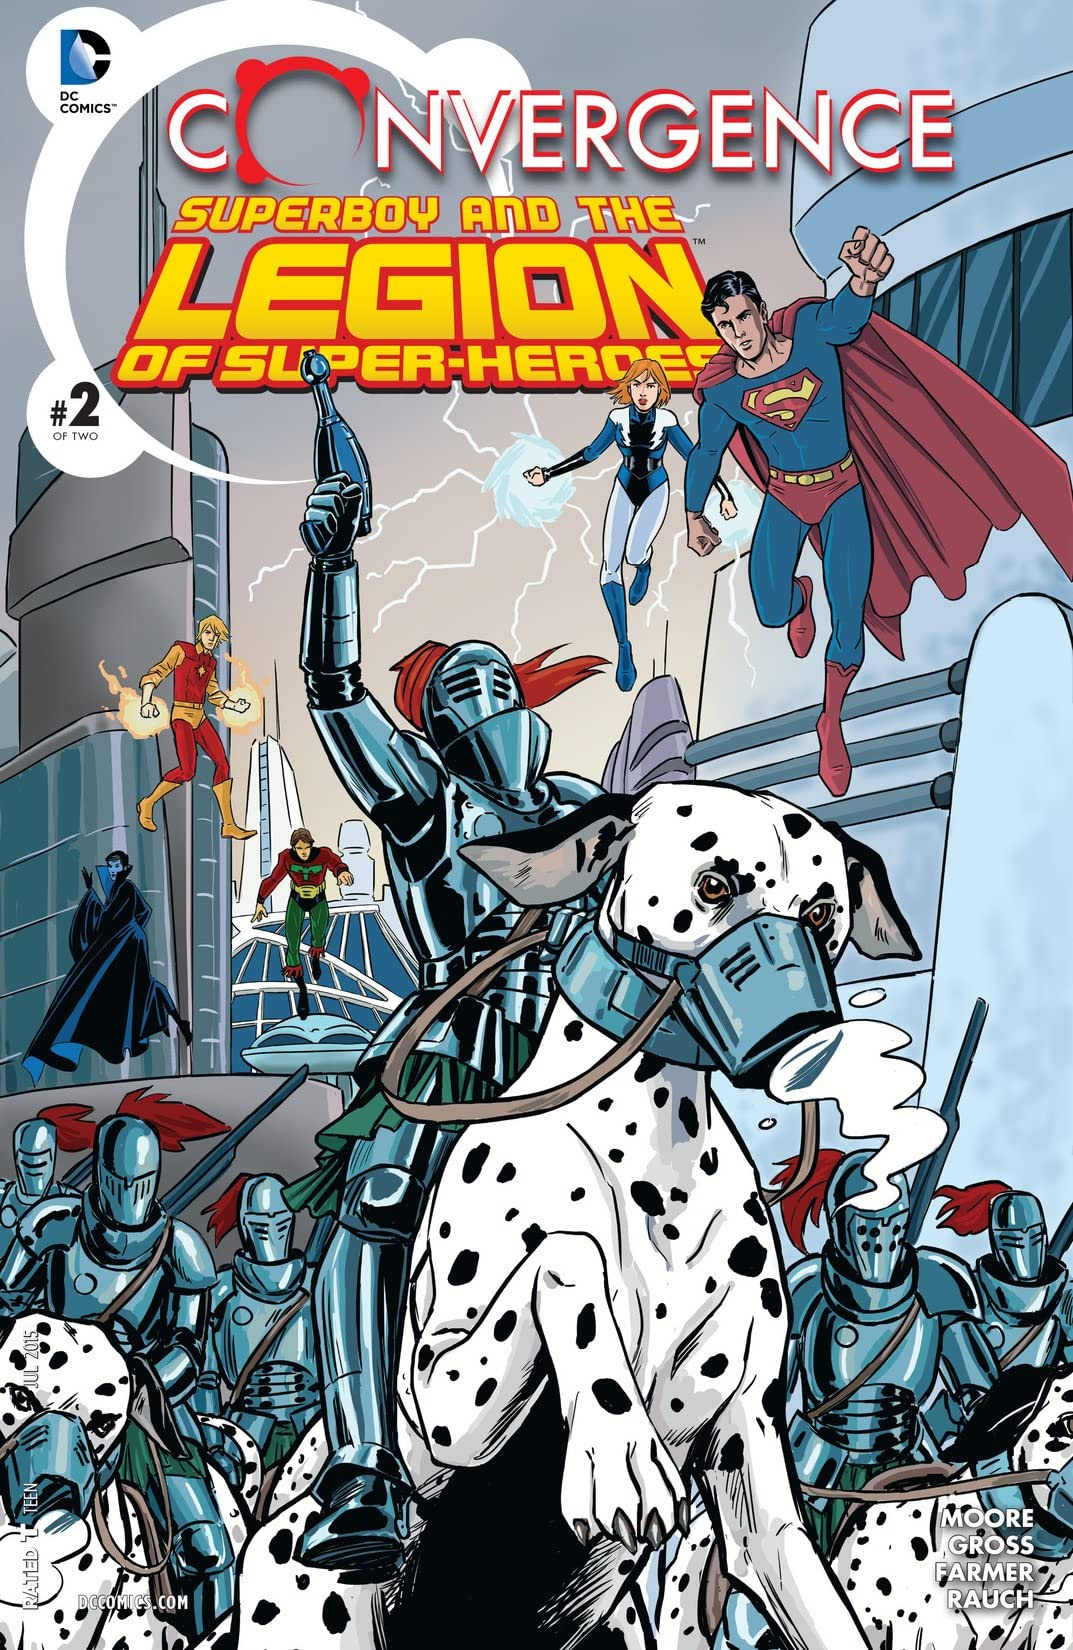 Convergence: Superboy and the Legion of Super-Heroes (2015) #2